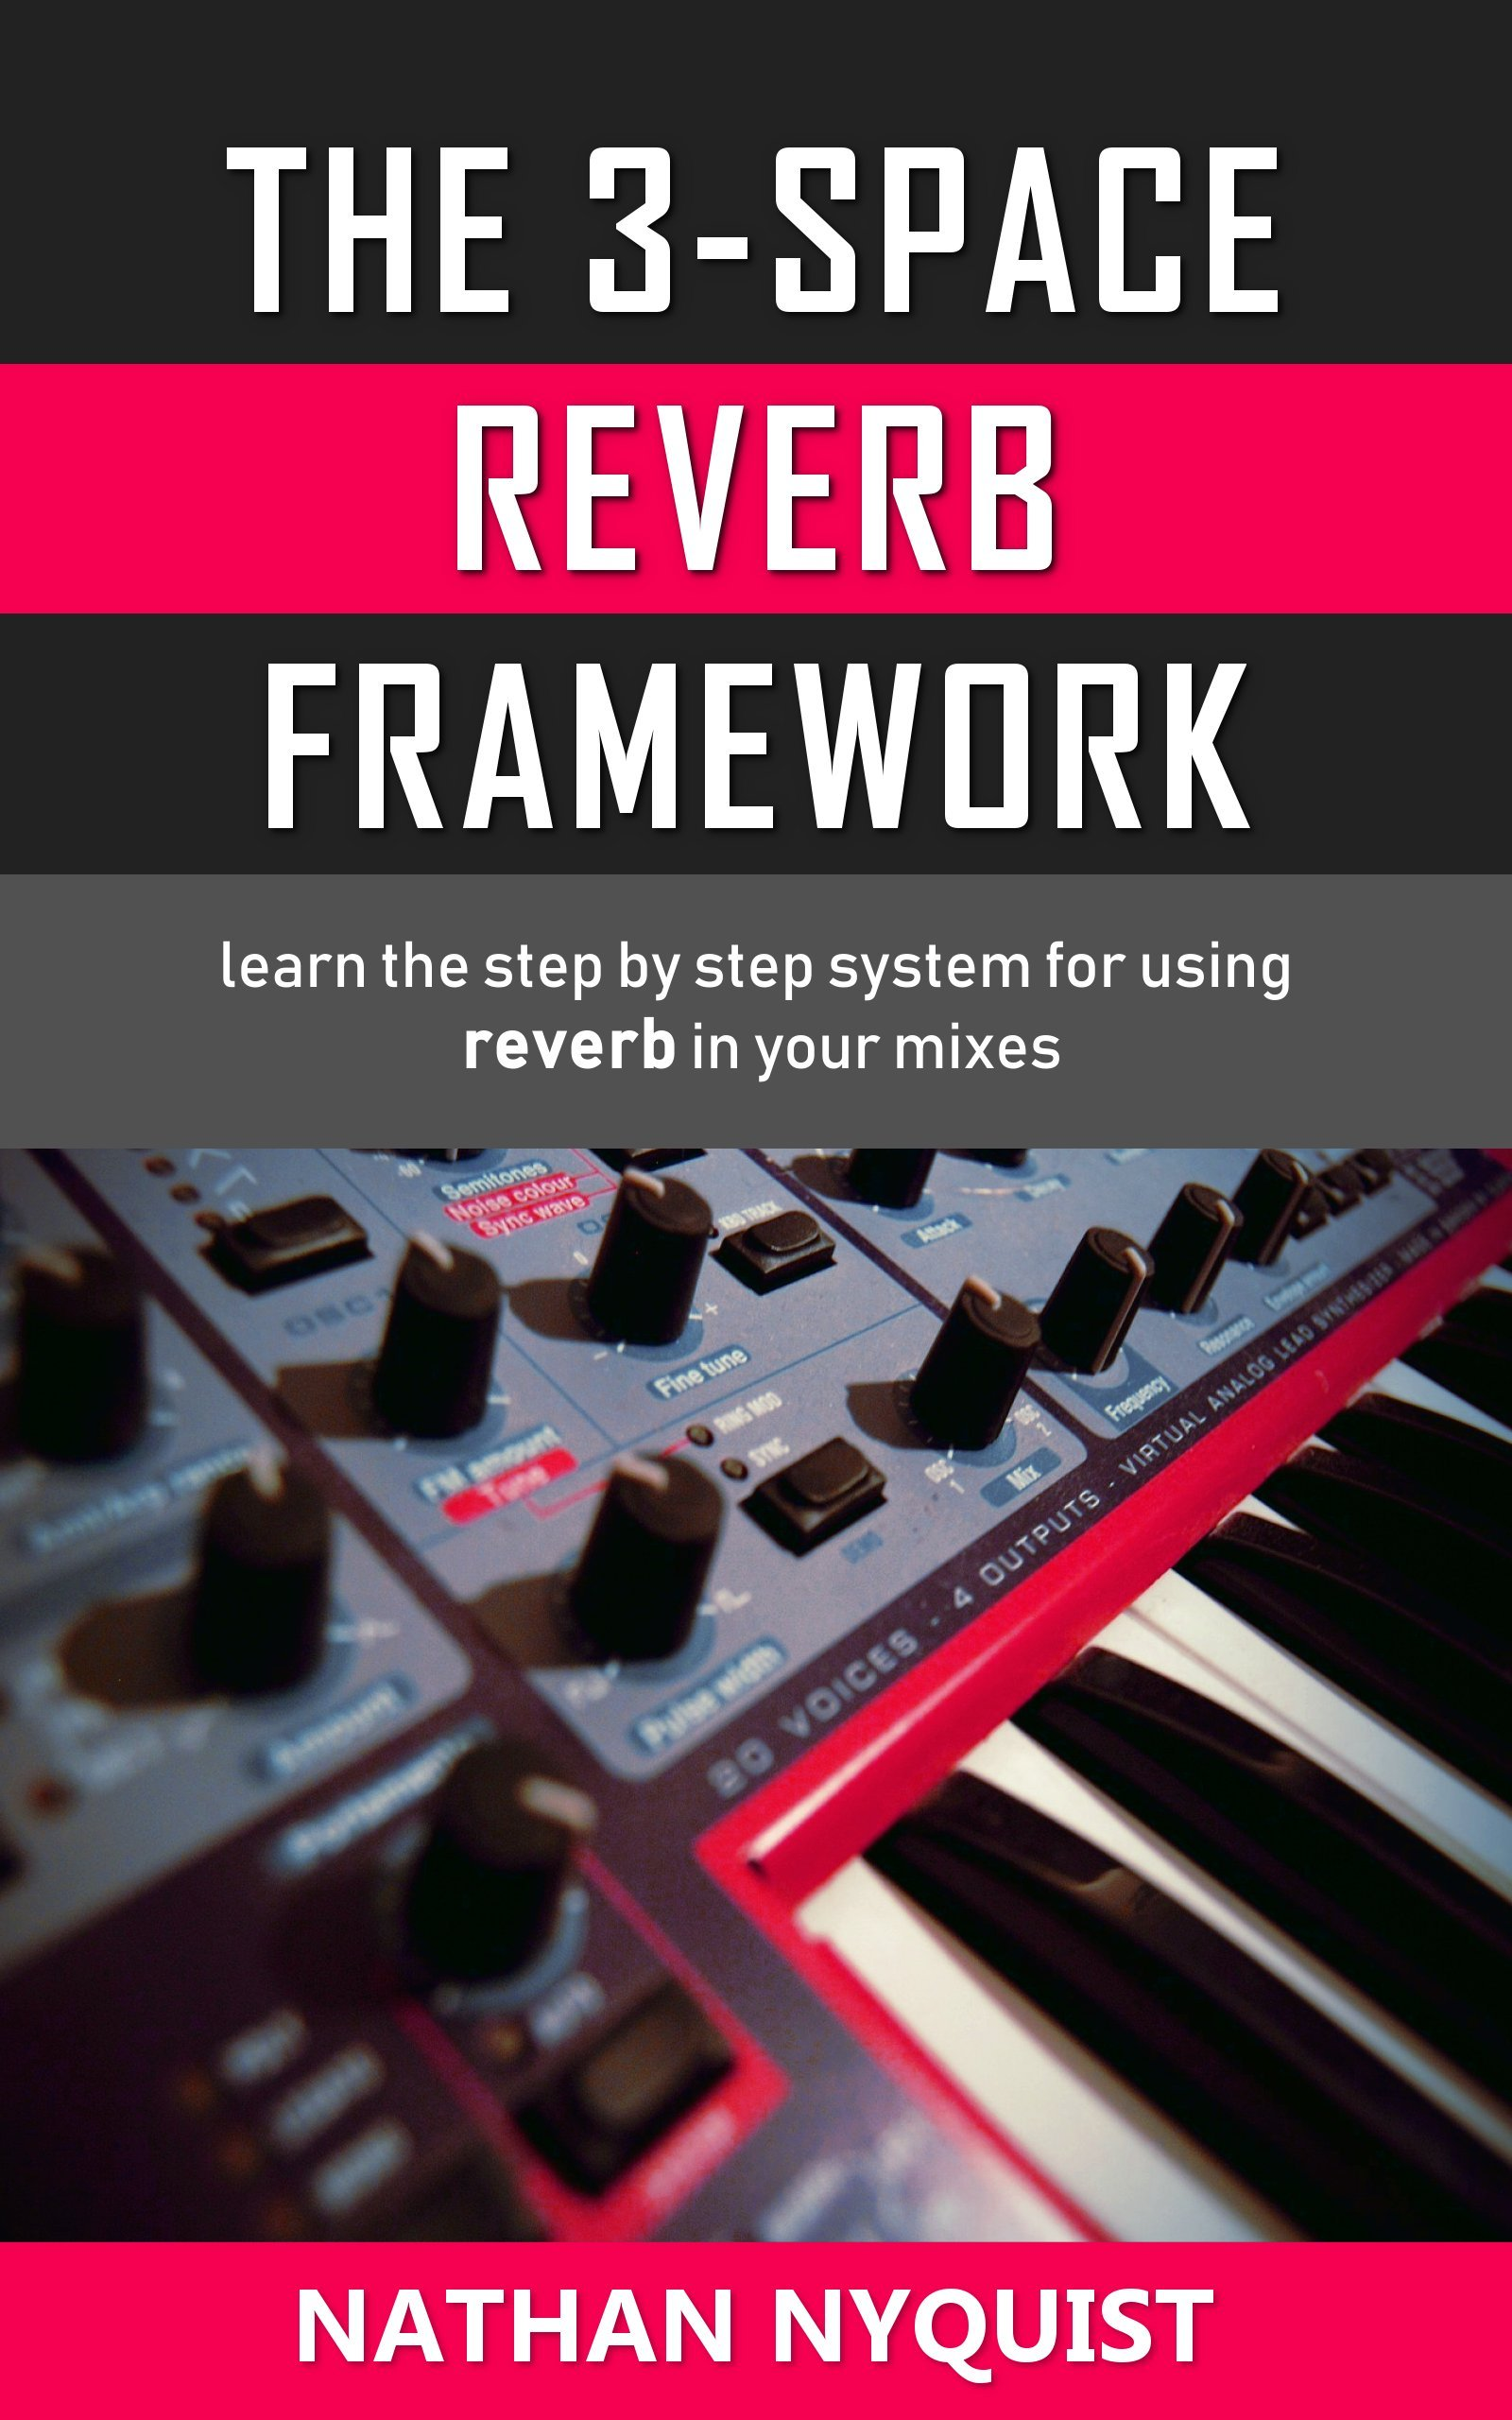 The 3 Space Reverb Framework  Learn The Step By Step System For Using Reverb In Your Mixes  Audio Engineering Music Production Sound Design And Mixing Audio Series  Book 2   English Edition